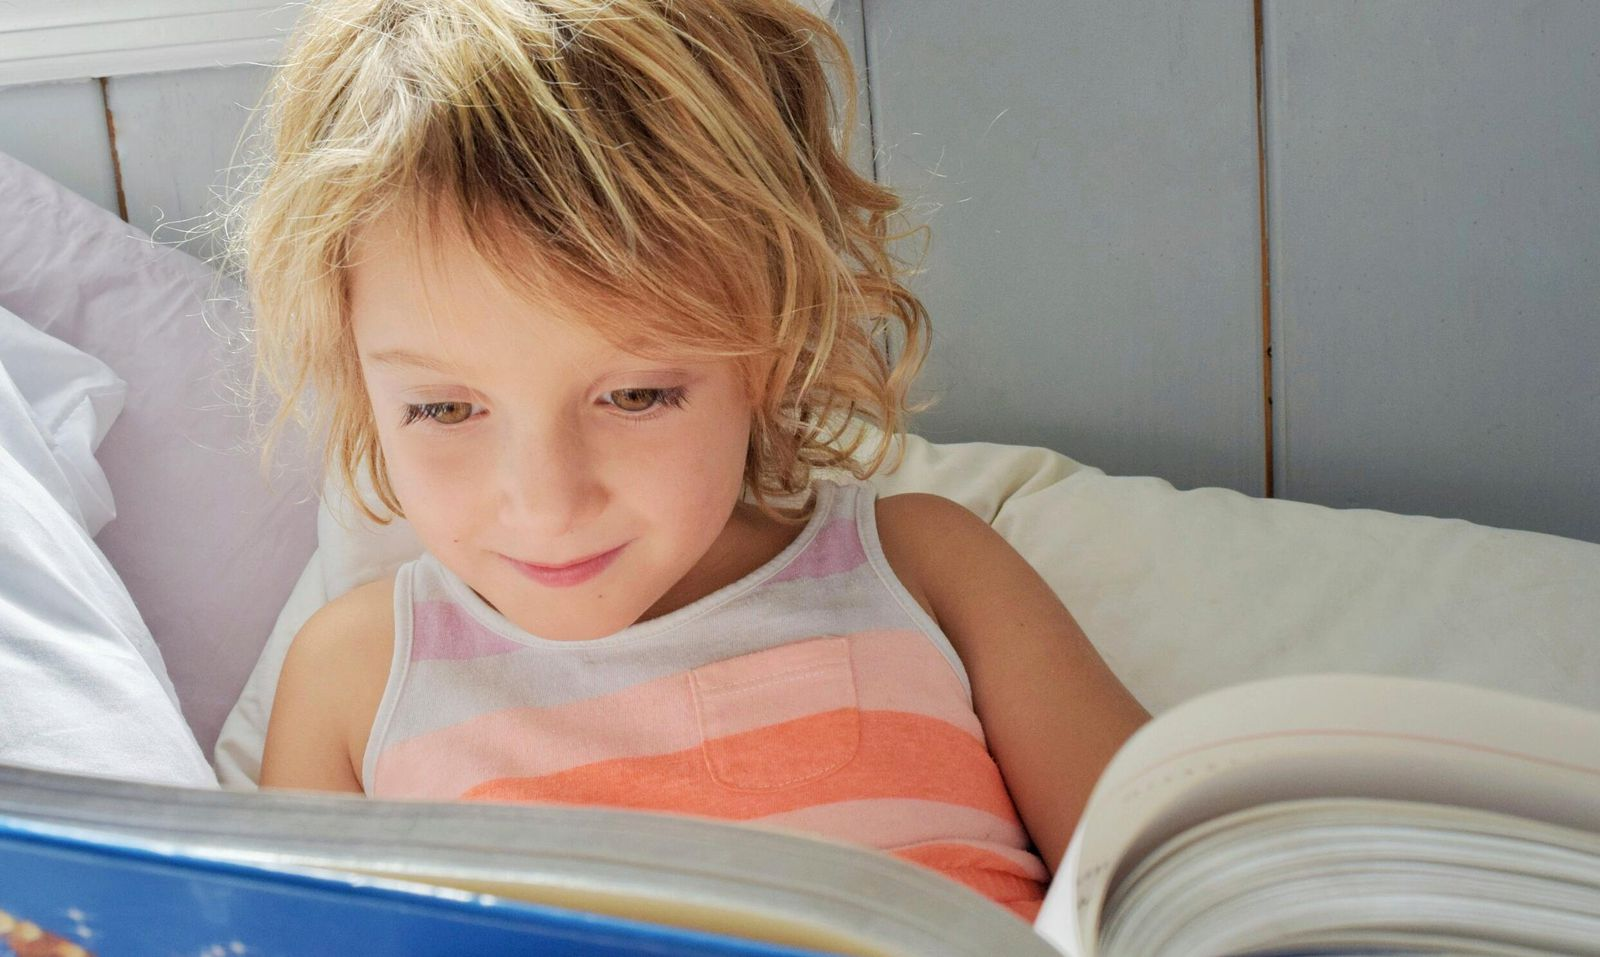 Six Children's Books That Use Psychological Techniques to Help Kids